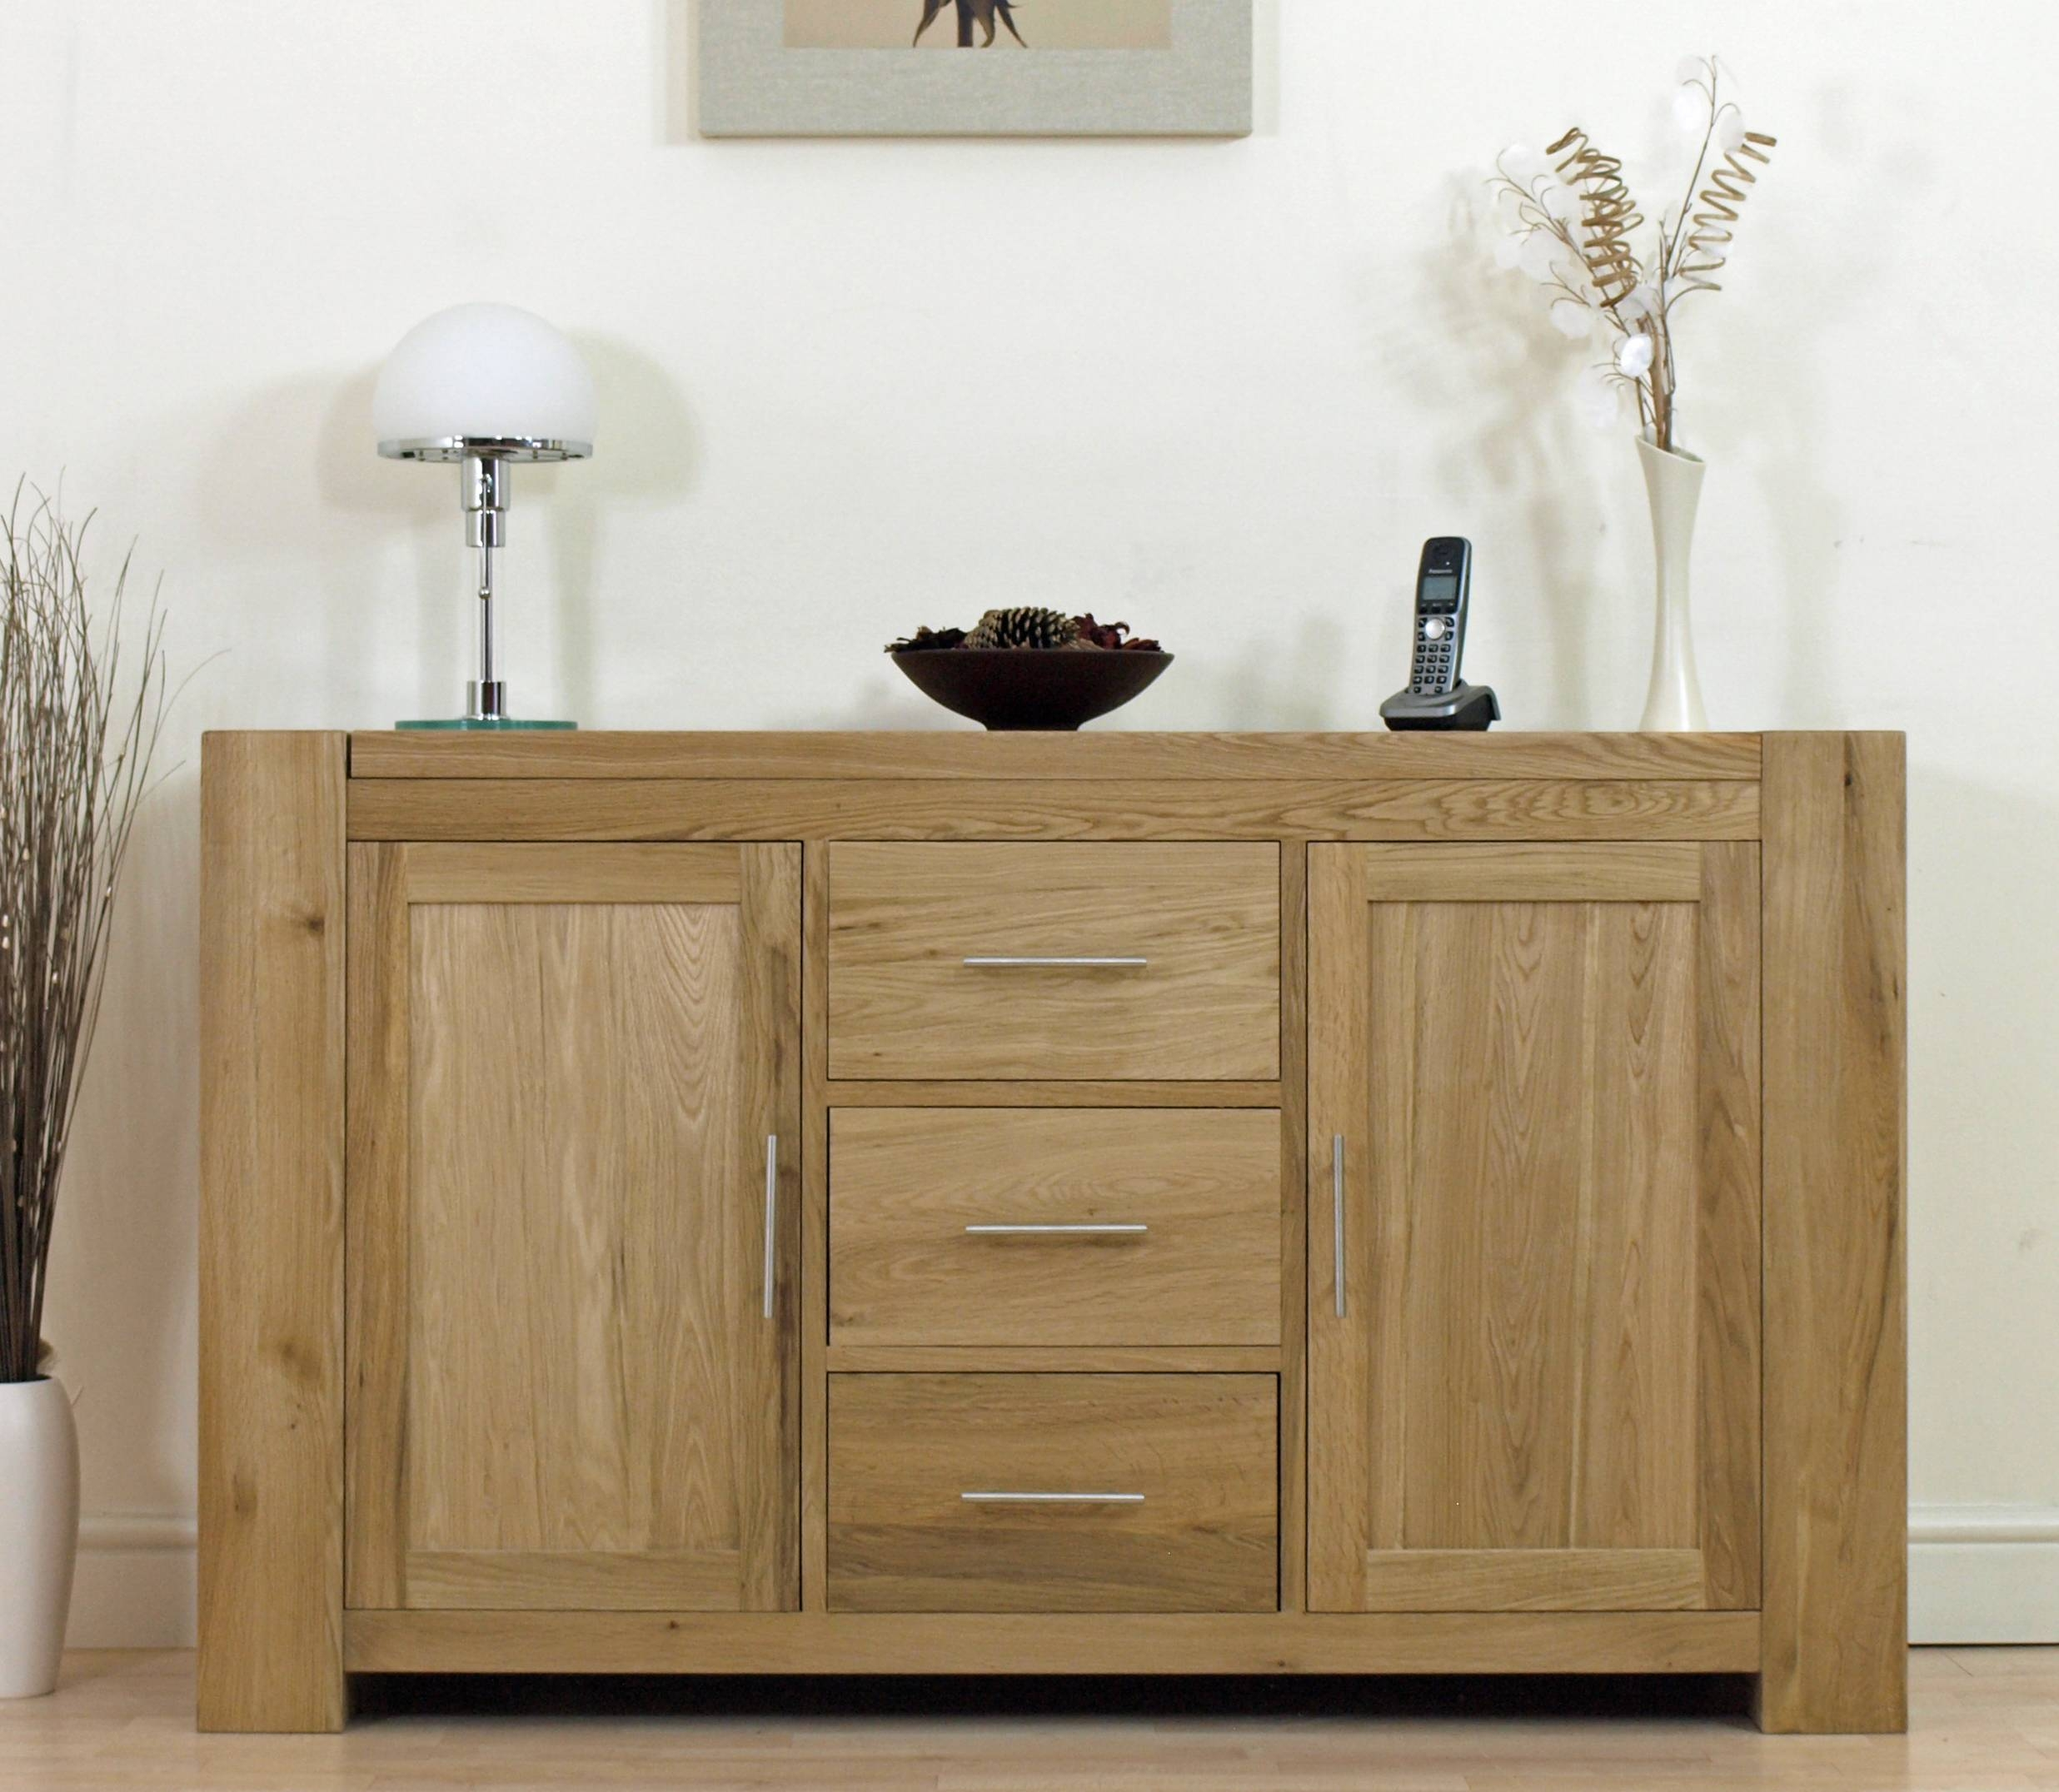 Solid Oak Sideboard Is Your First Choice Living Room Furniture - Hgnv intended for Solid Oak Sideboards (Image 13 of 15)